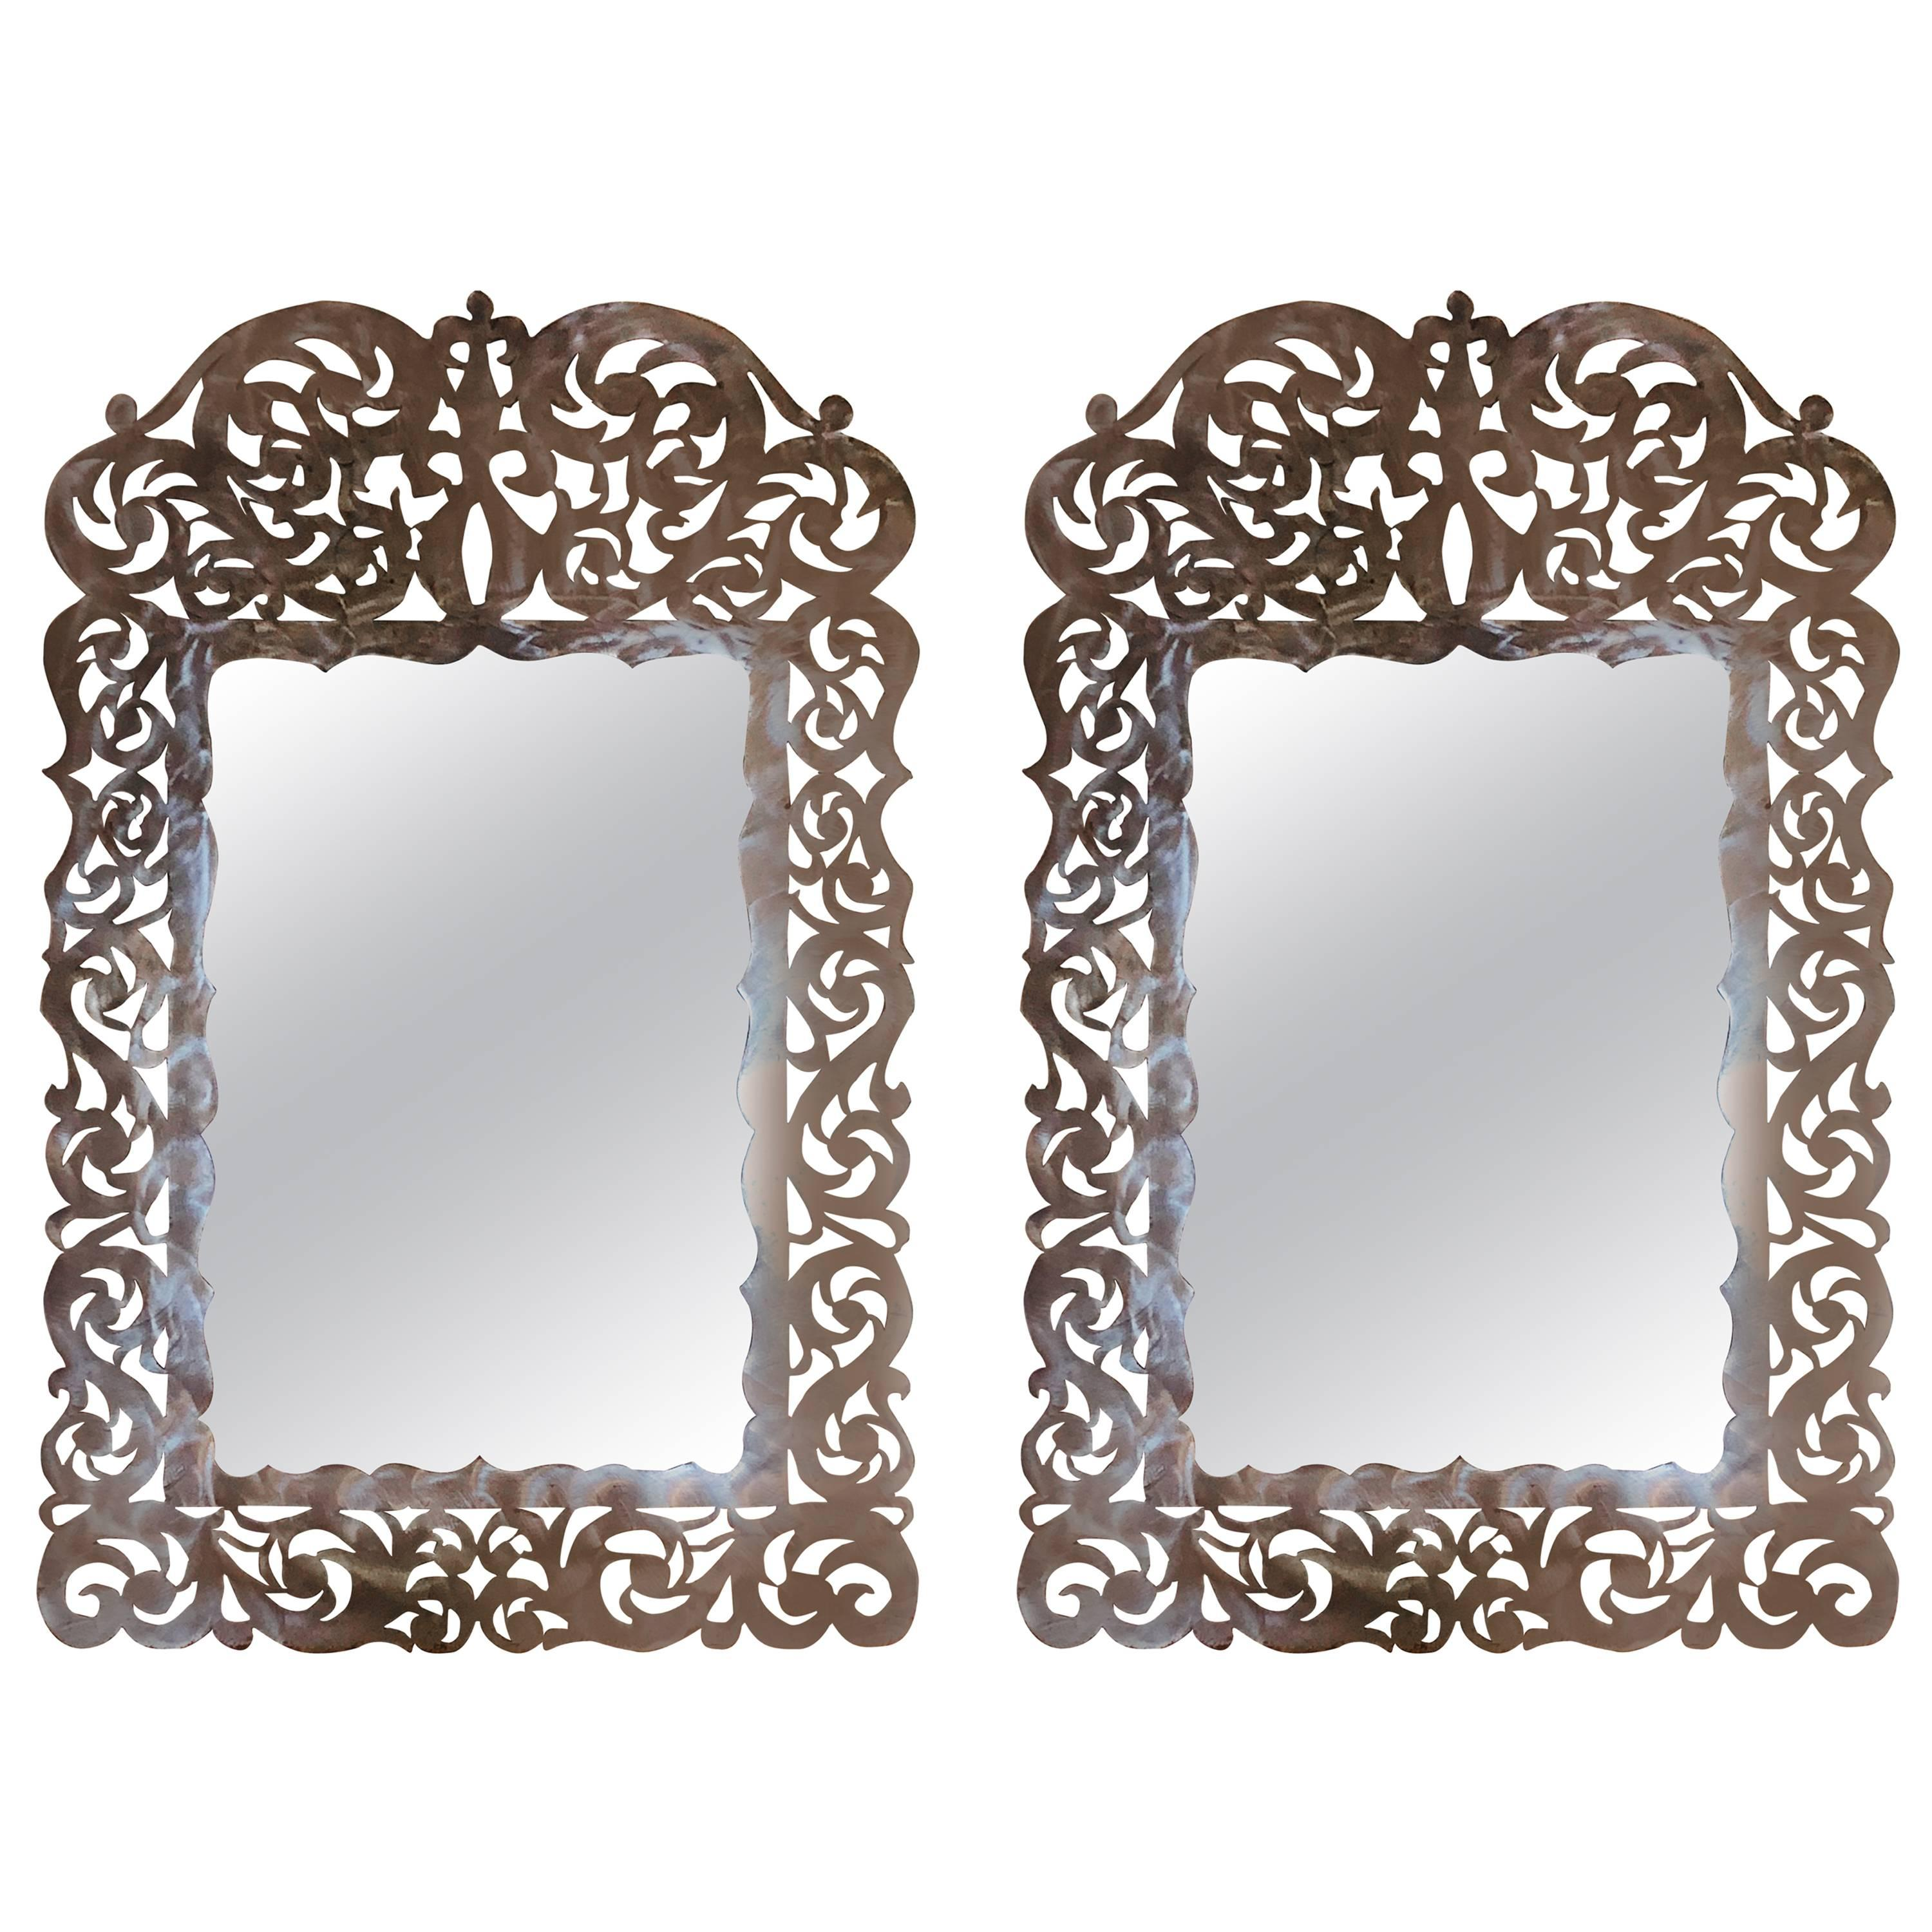 Paul Evans Style Pair of Brutalist Steel Cut Handmade Wall or Console Mirrors